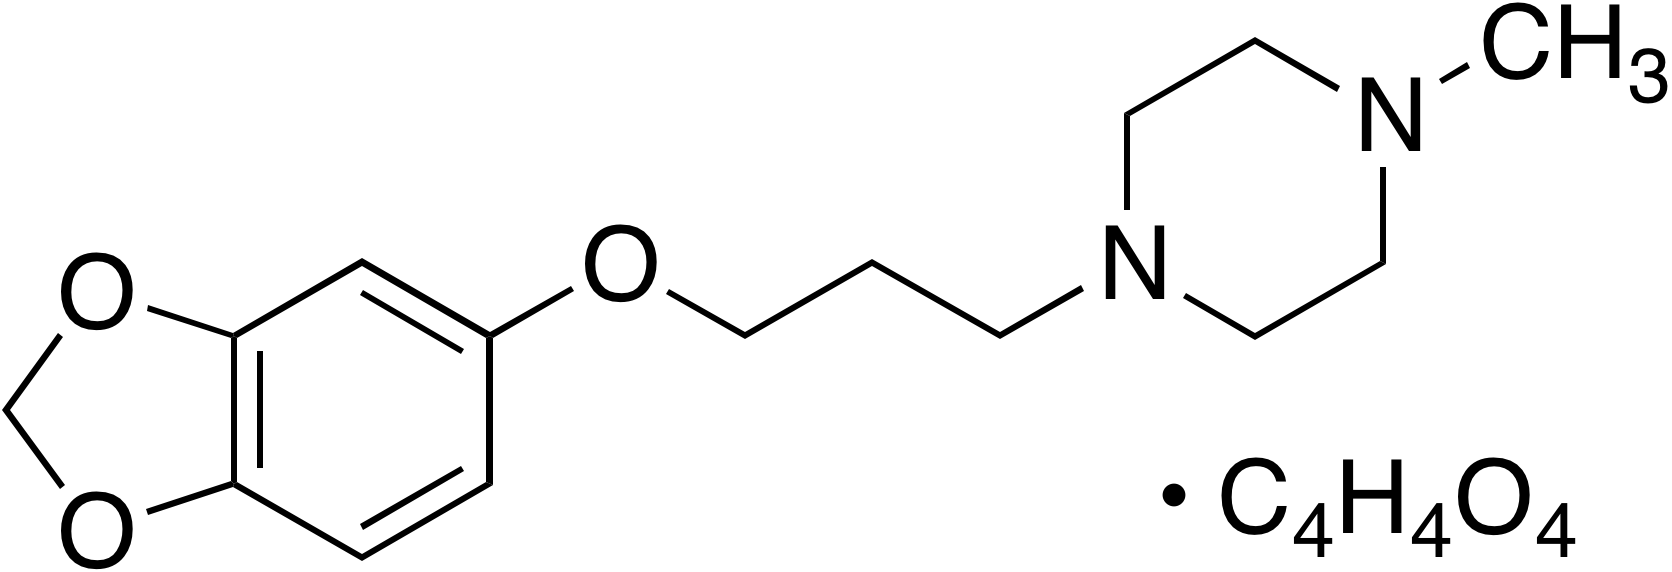 1-[3-(3,4-Methylenedioxy)propyl]-4-methylpiperazine maleate